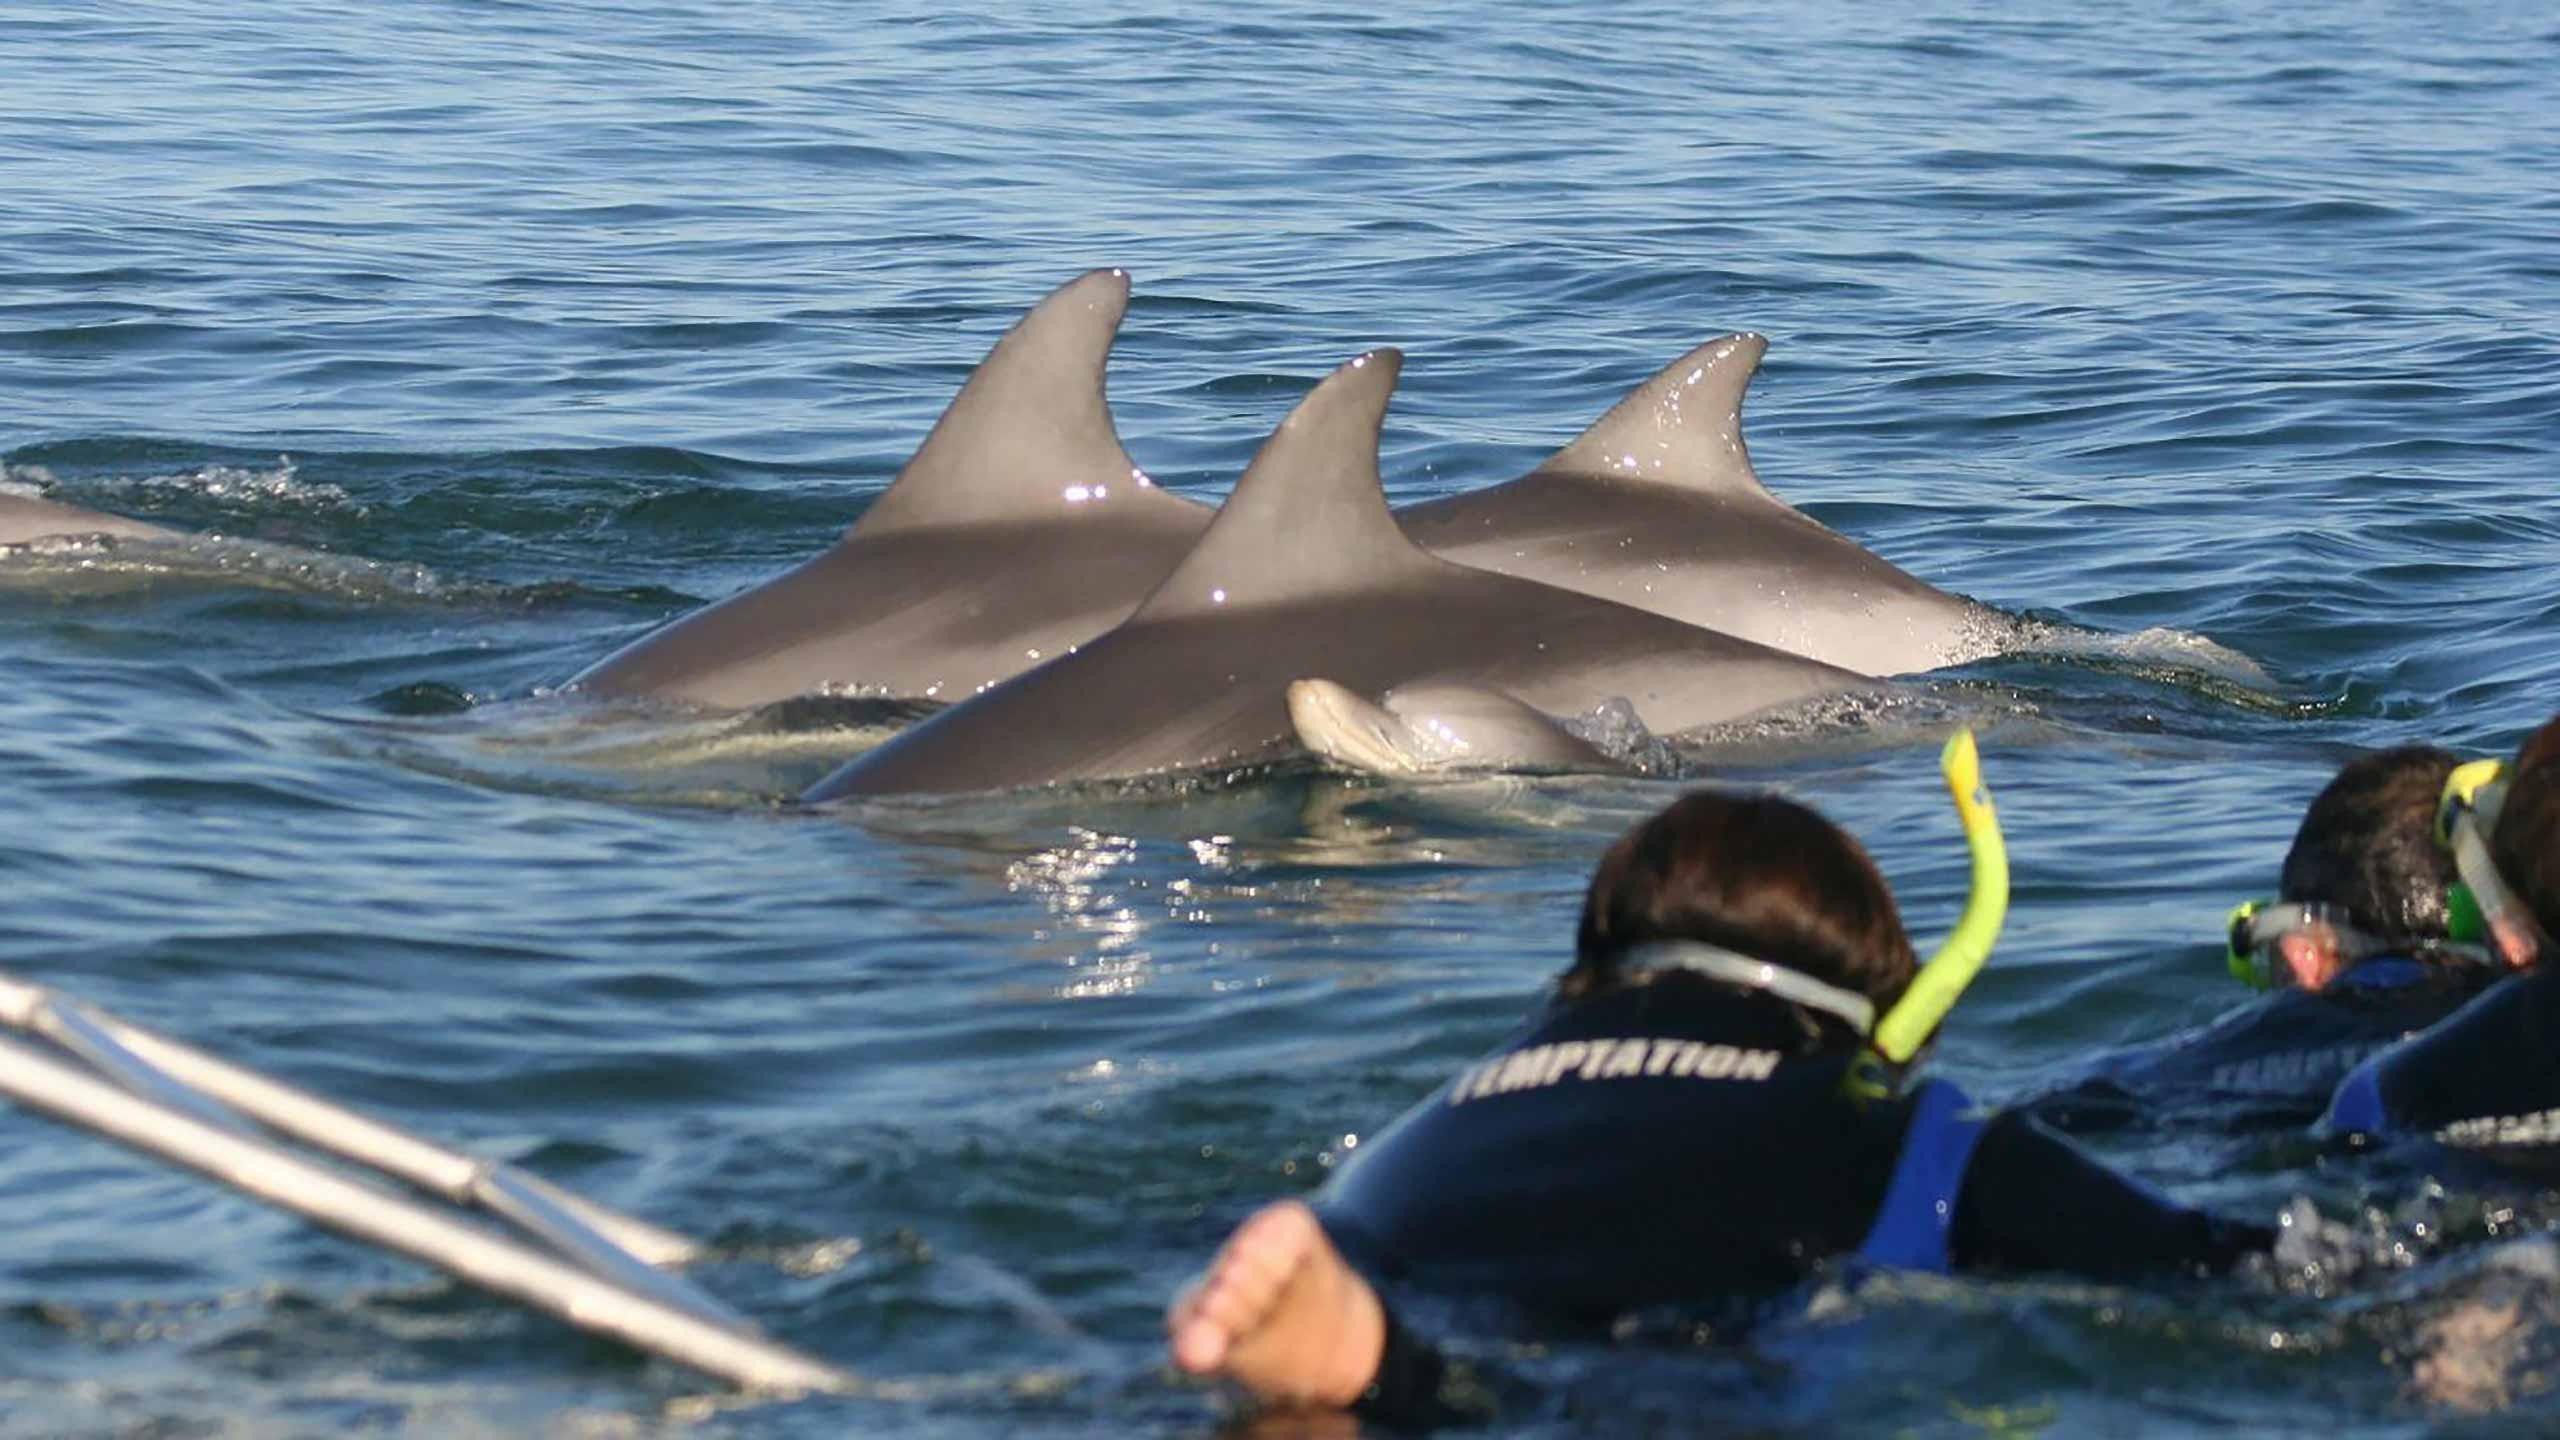 swim-with-the-dolphins-temptation-sailing-glenelg